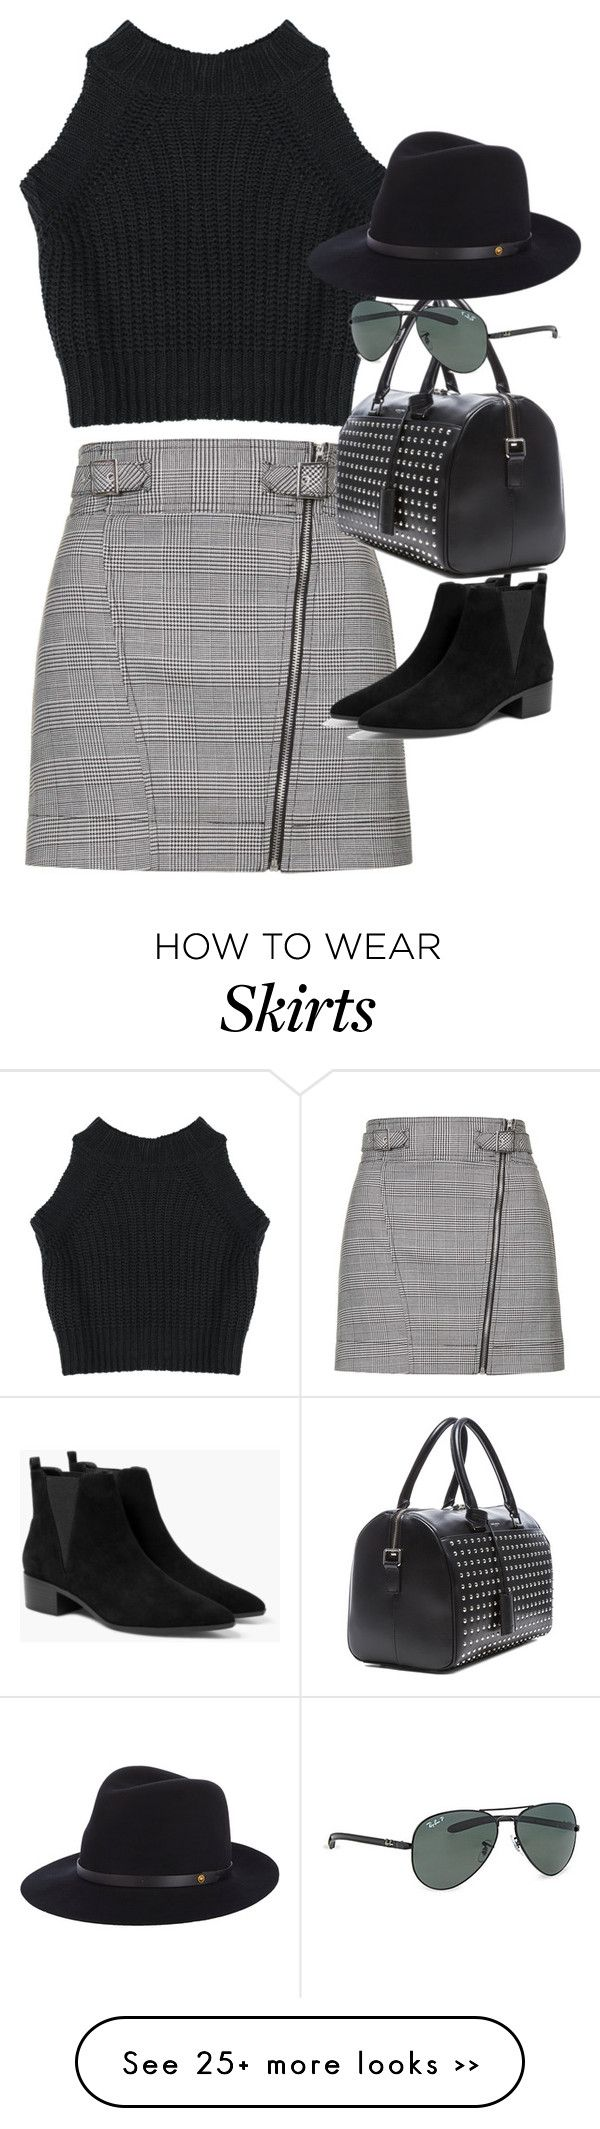 """Inspired outfit with a check skirt"" by whathayleywore on Polyvore featuring Topshop, MANGO, Yves Saint Laurent, Ray-Ban and rag & bone"